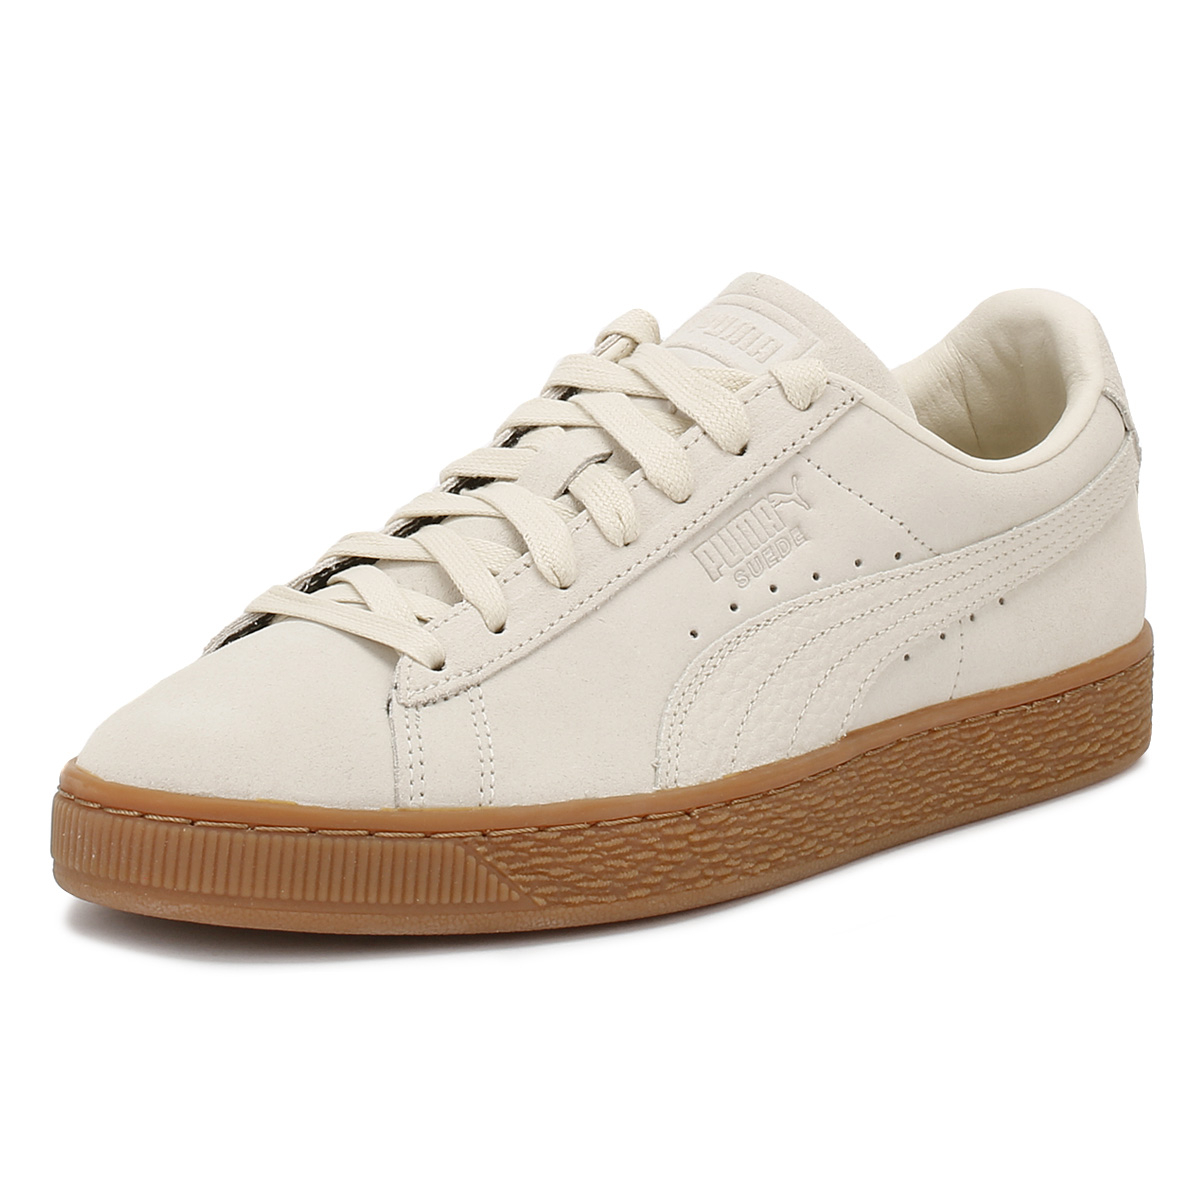 Details about Puma Mens Trainers Birch Beige Suede Classic Lace Up Sports  Casual Shoes 1a8e2ae7a